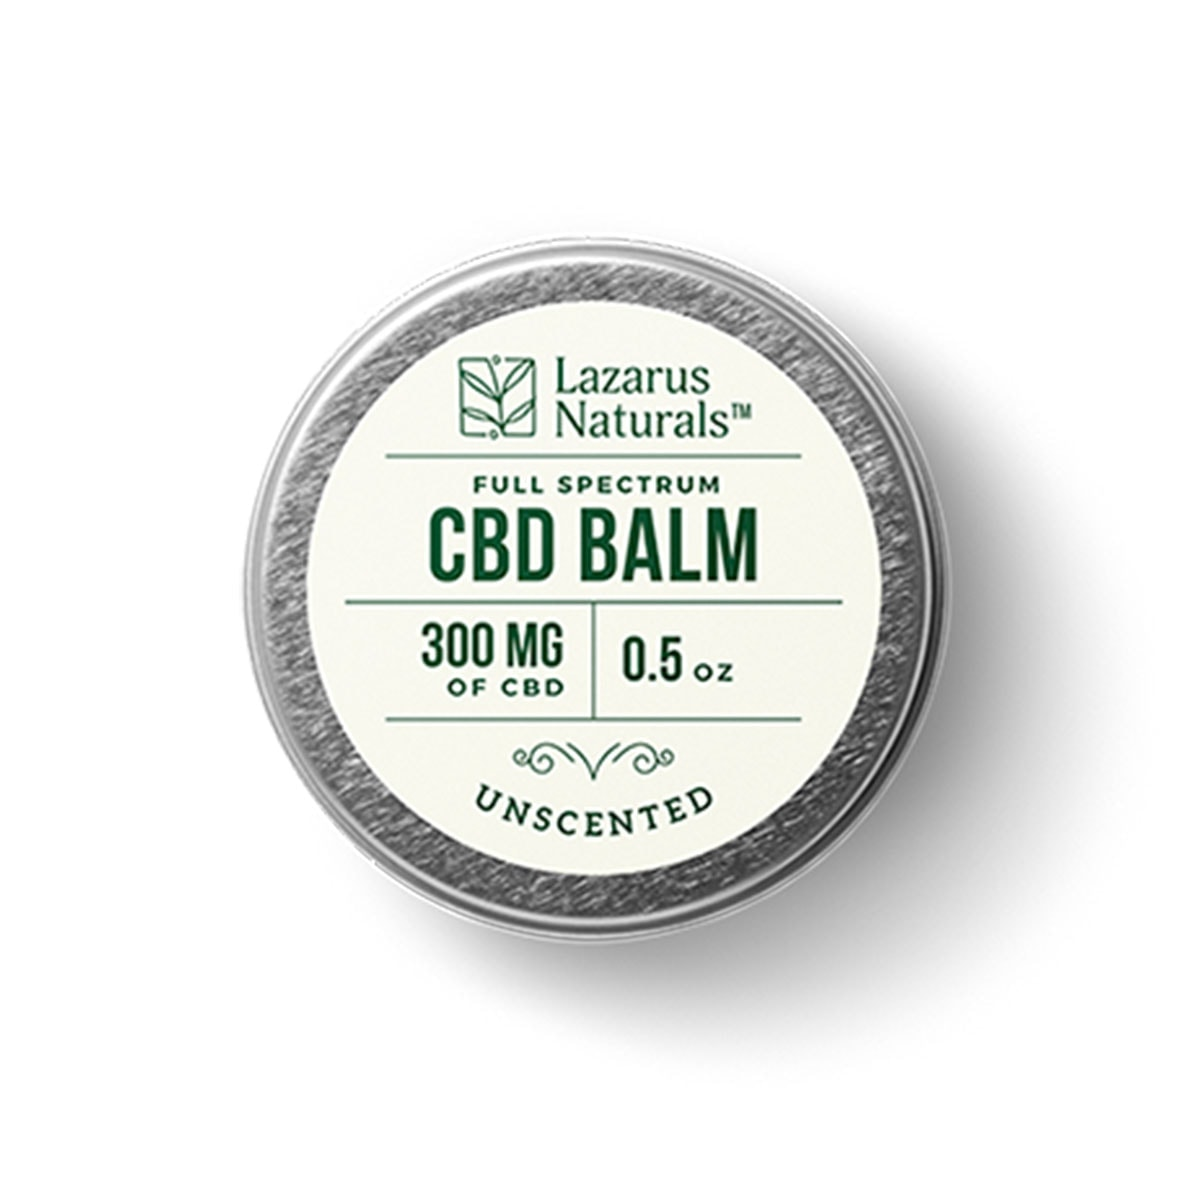 Lazarus-Naturals,-Unscented-Full-Spectrum-CBD-Balm,-0.5oz,-300mg-of-CBD